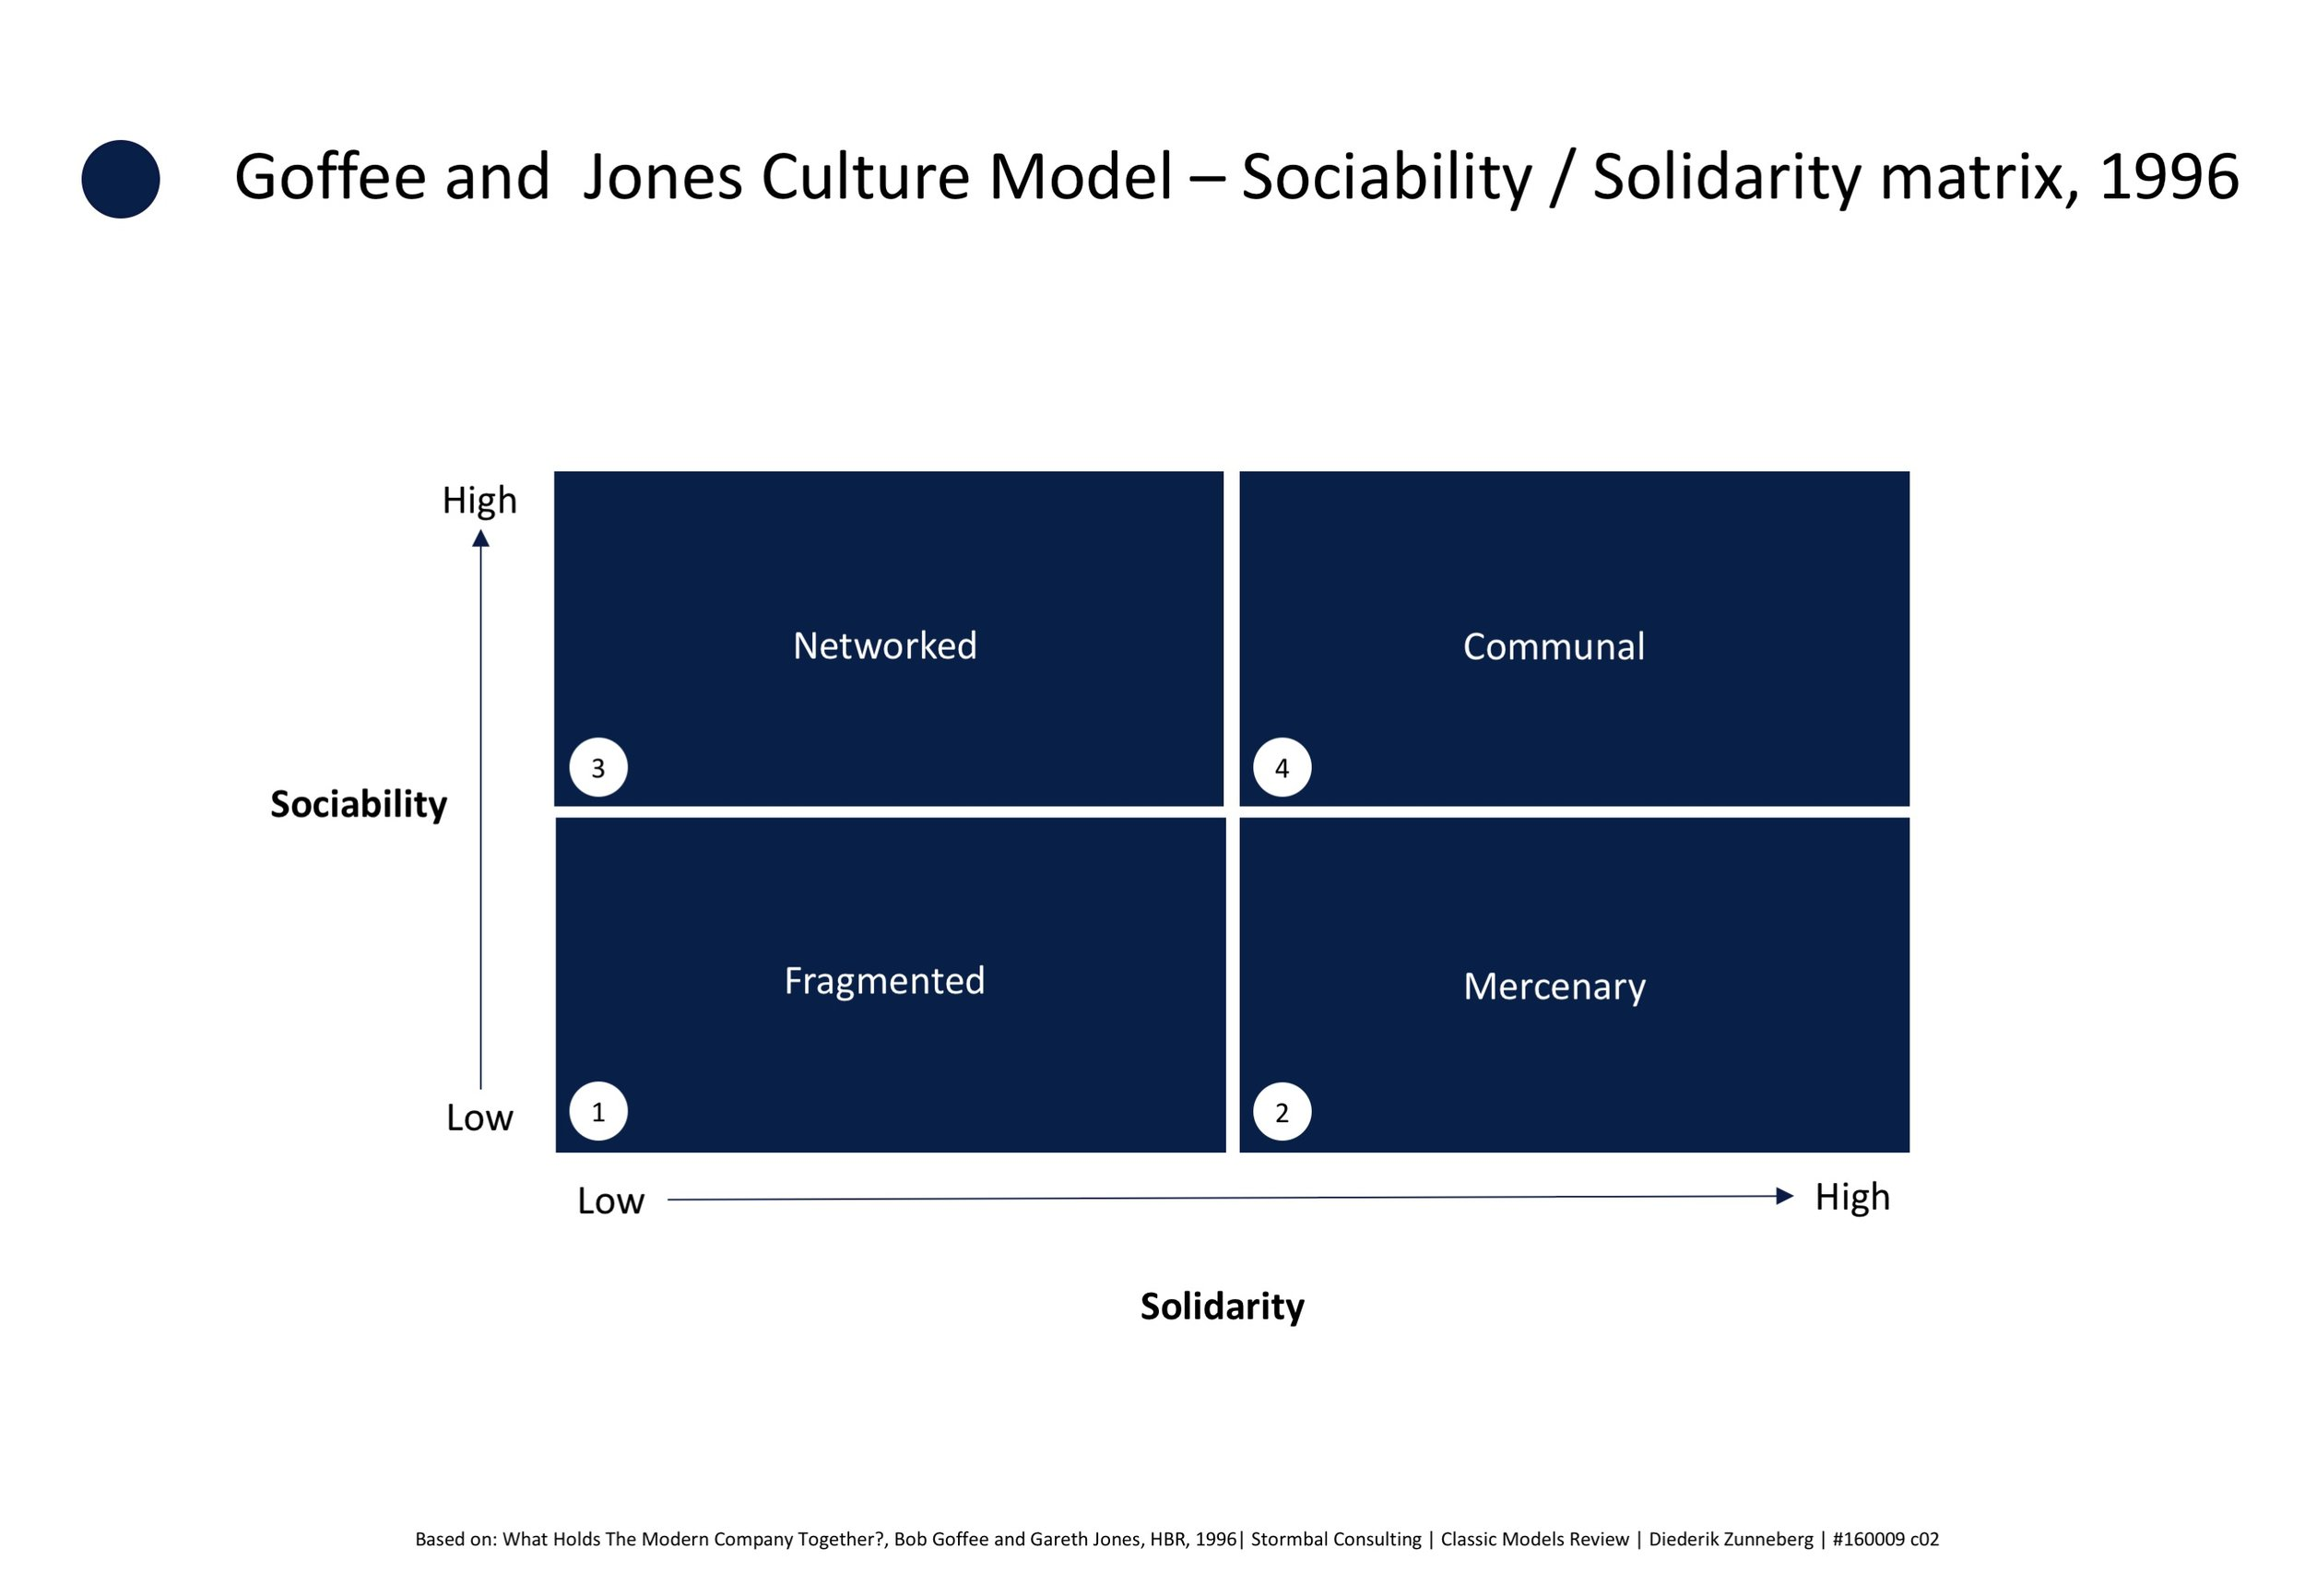 Goffee and Jones culture model, sociability / solidarity matrix | click on image to enlarge